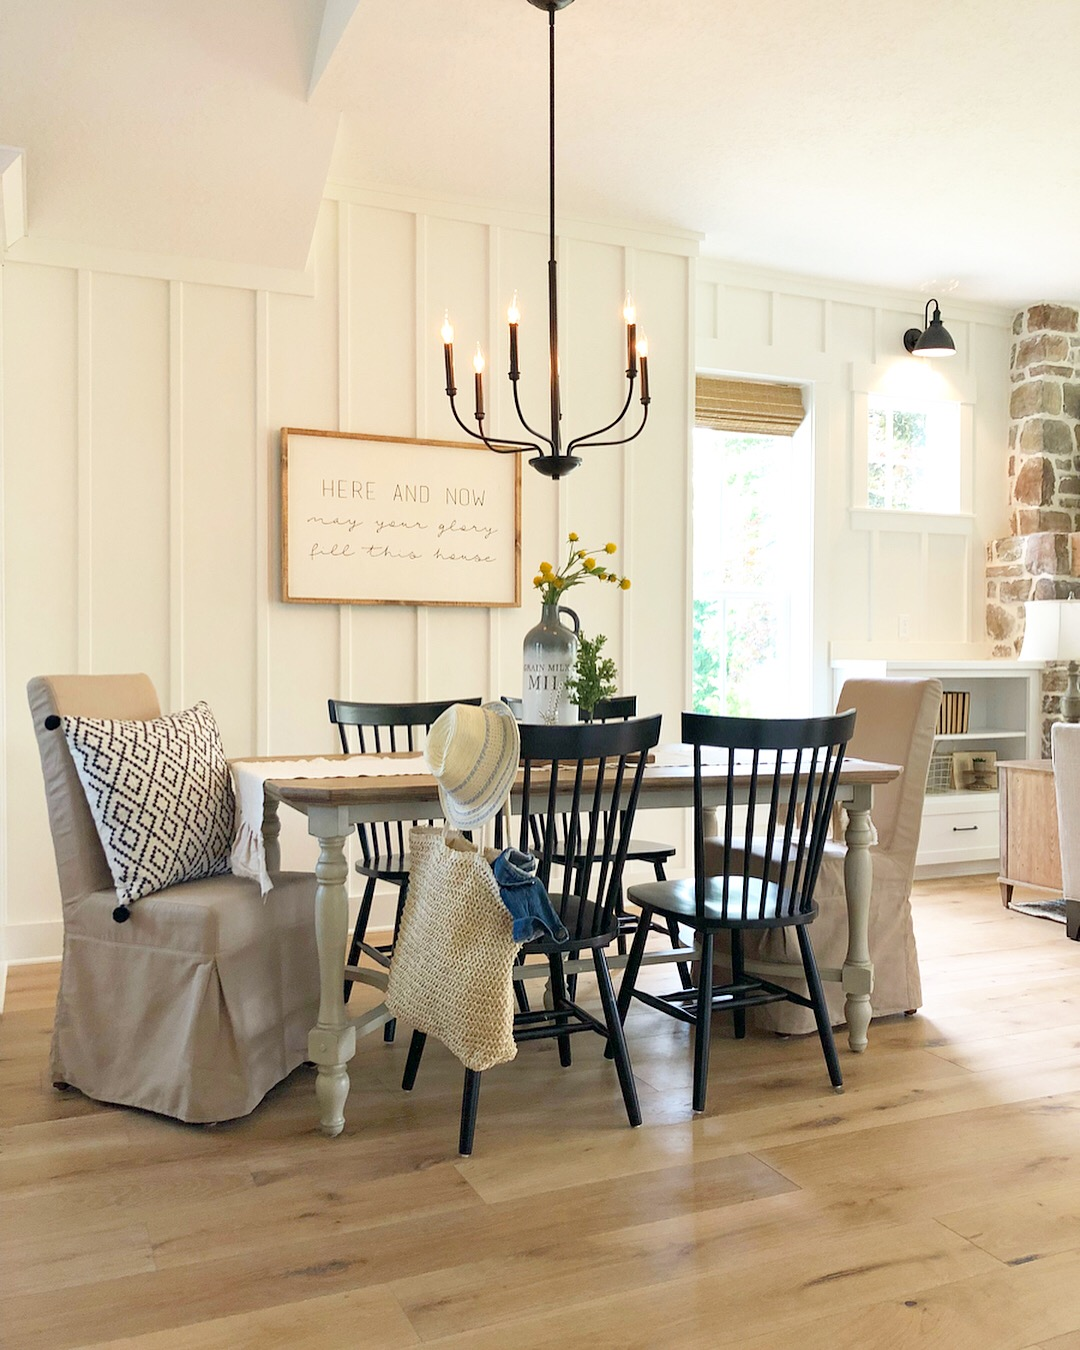 Shop our house yellow prairie interiors for Our house interiors